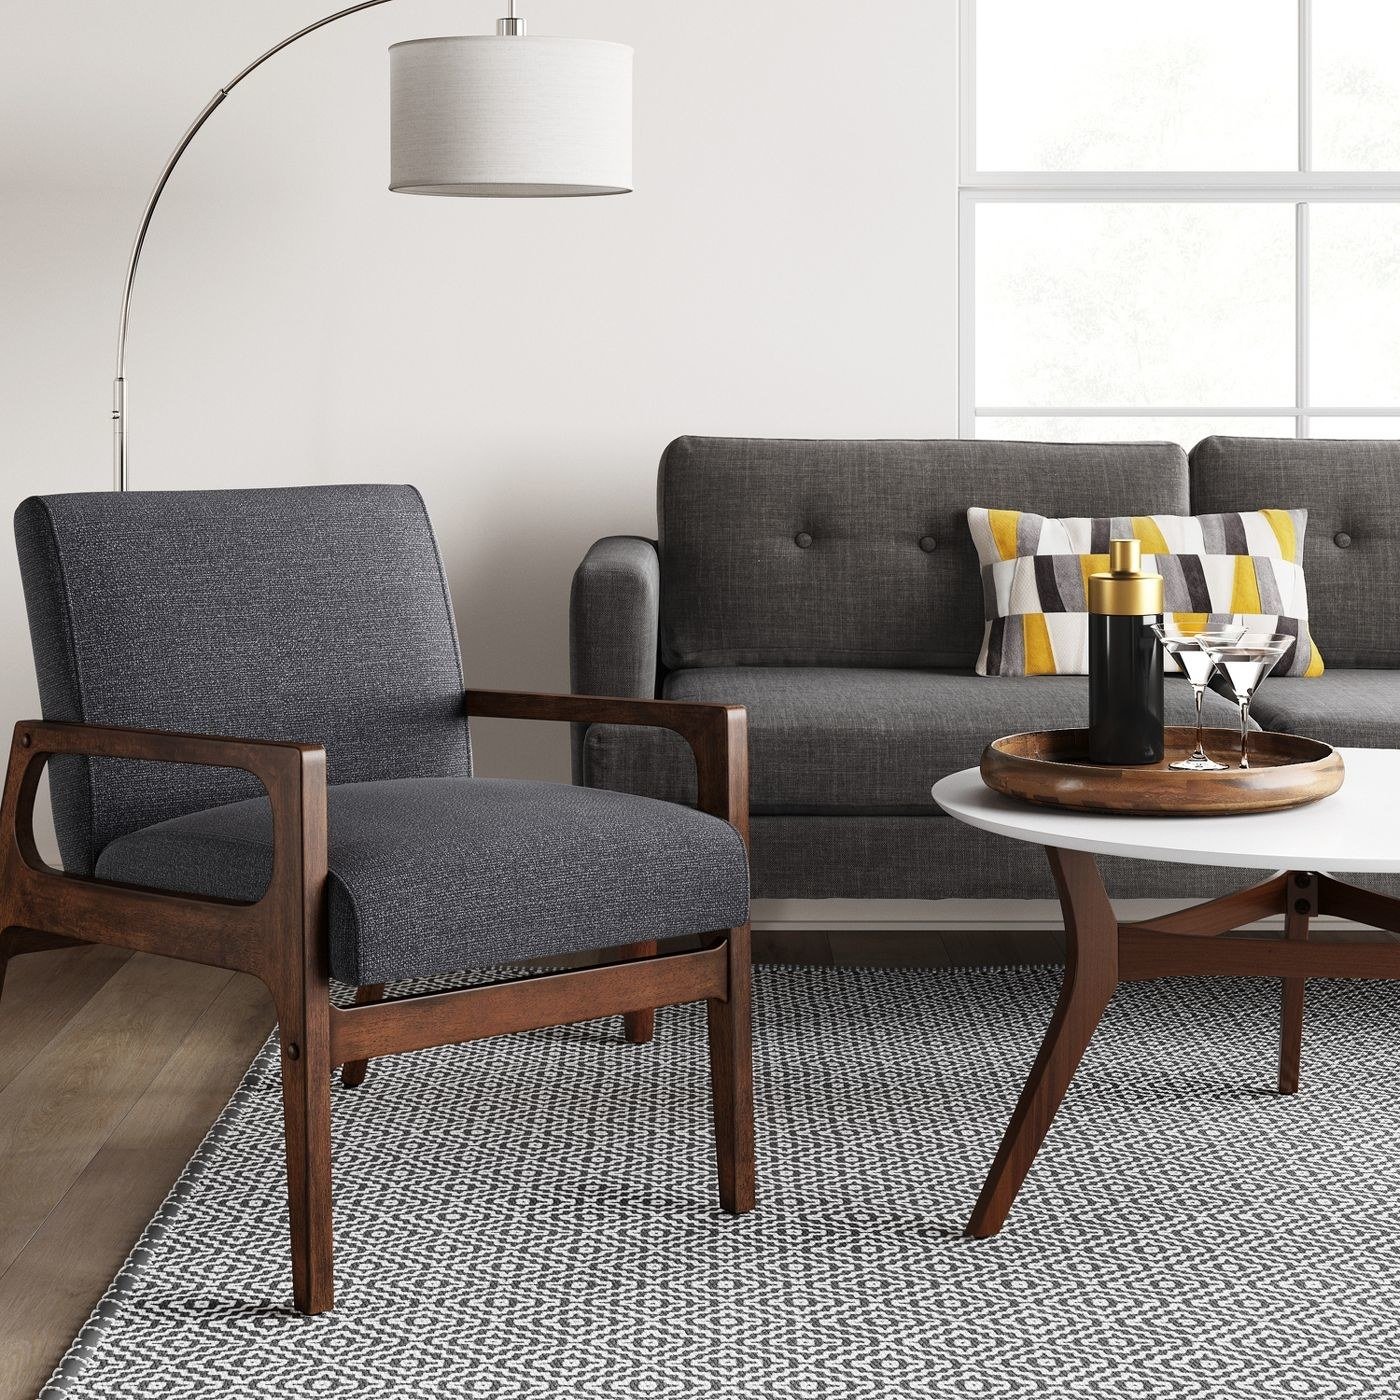 gray armchair with wood frame in a living room next to a gray couch